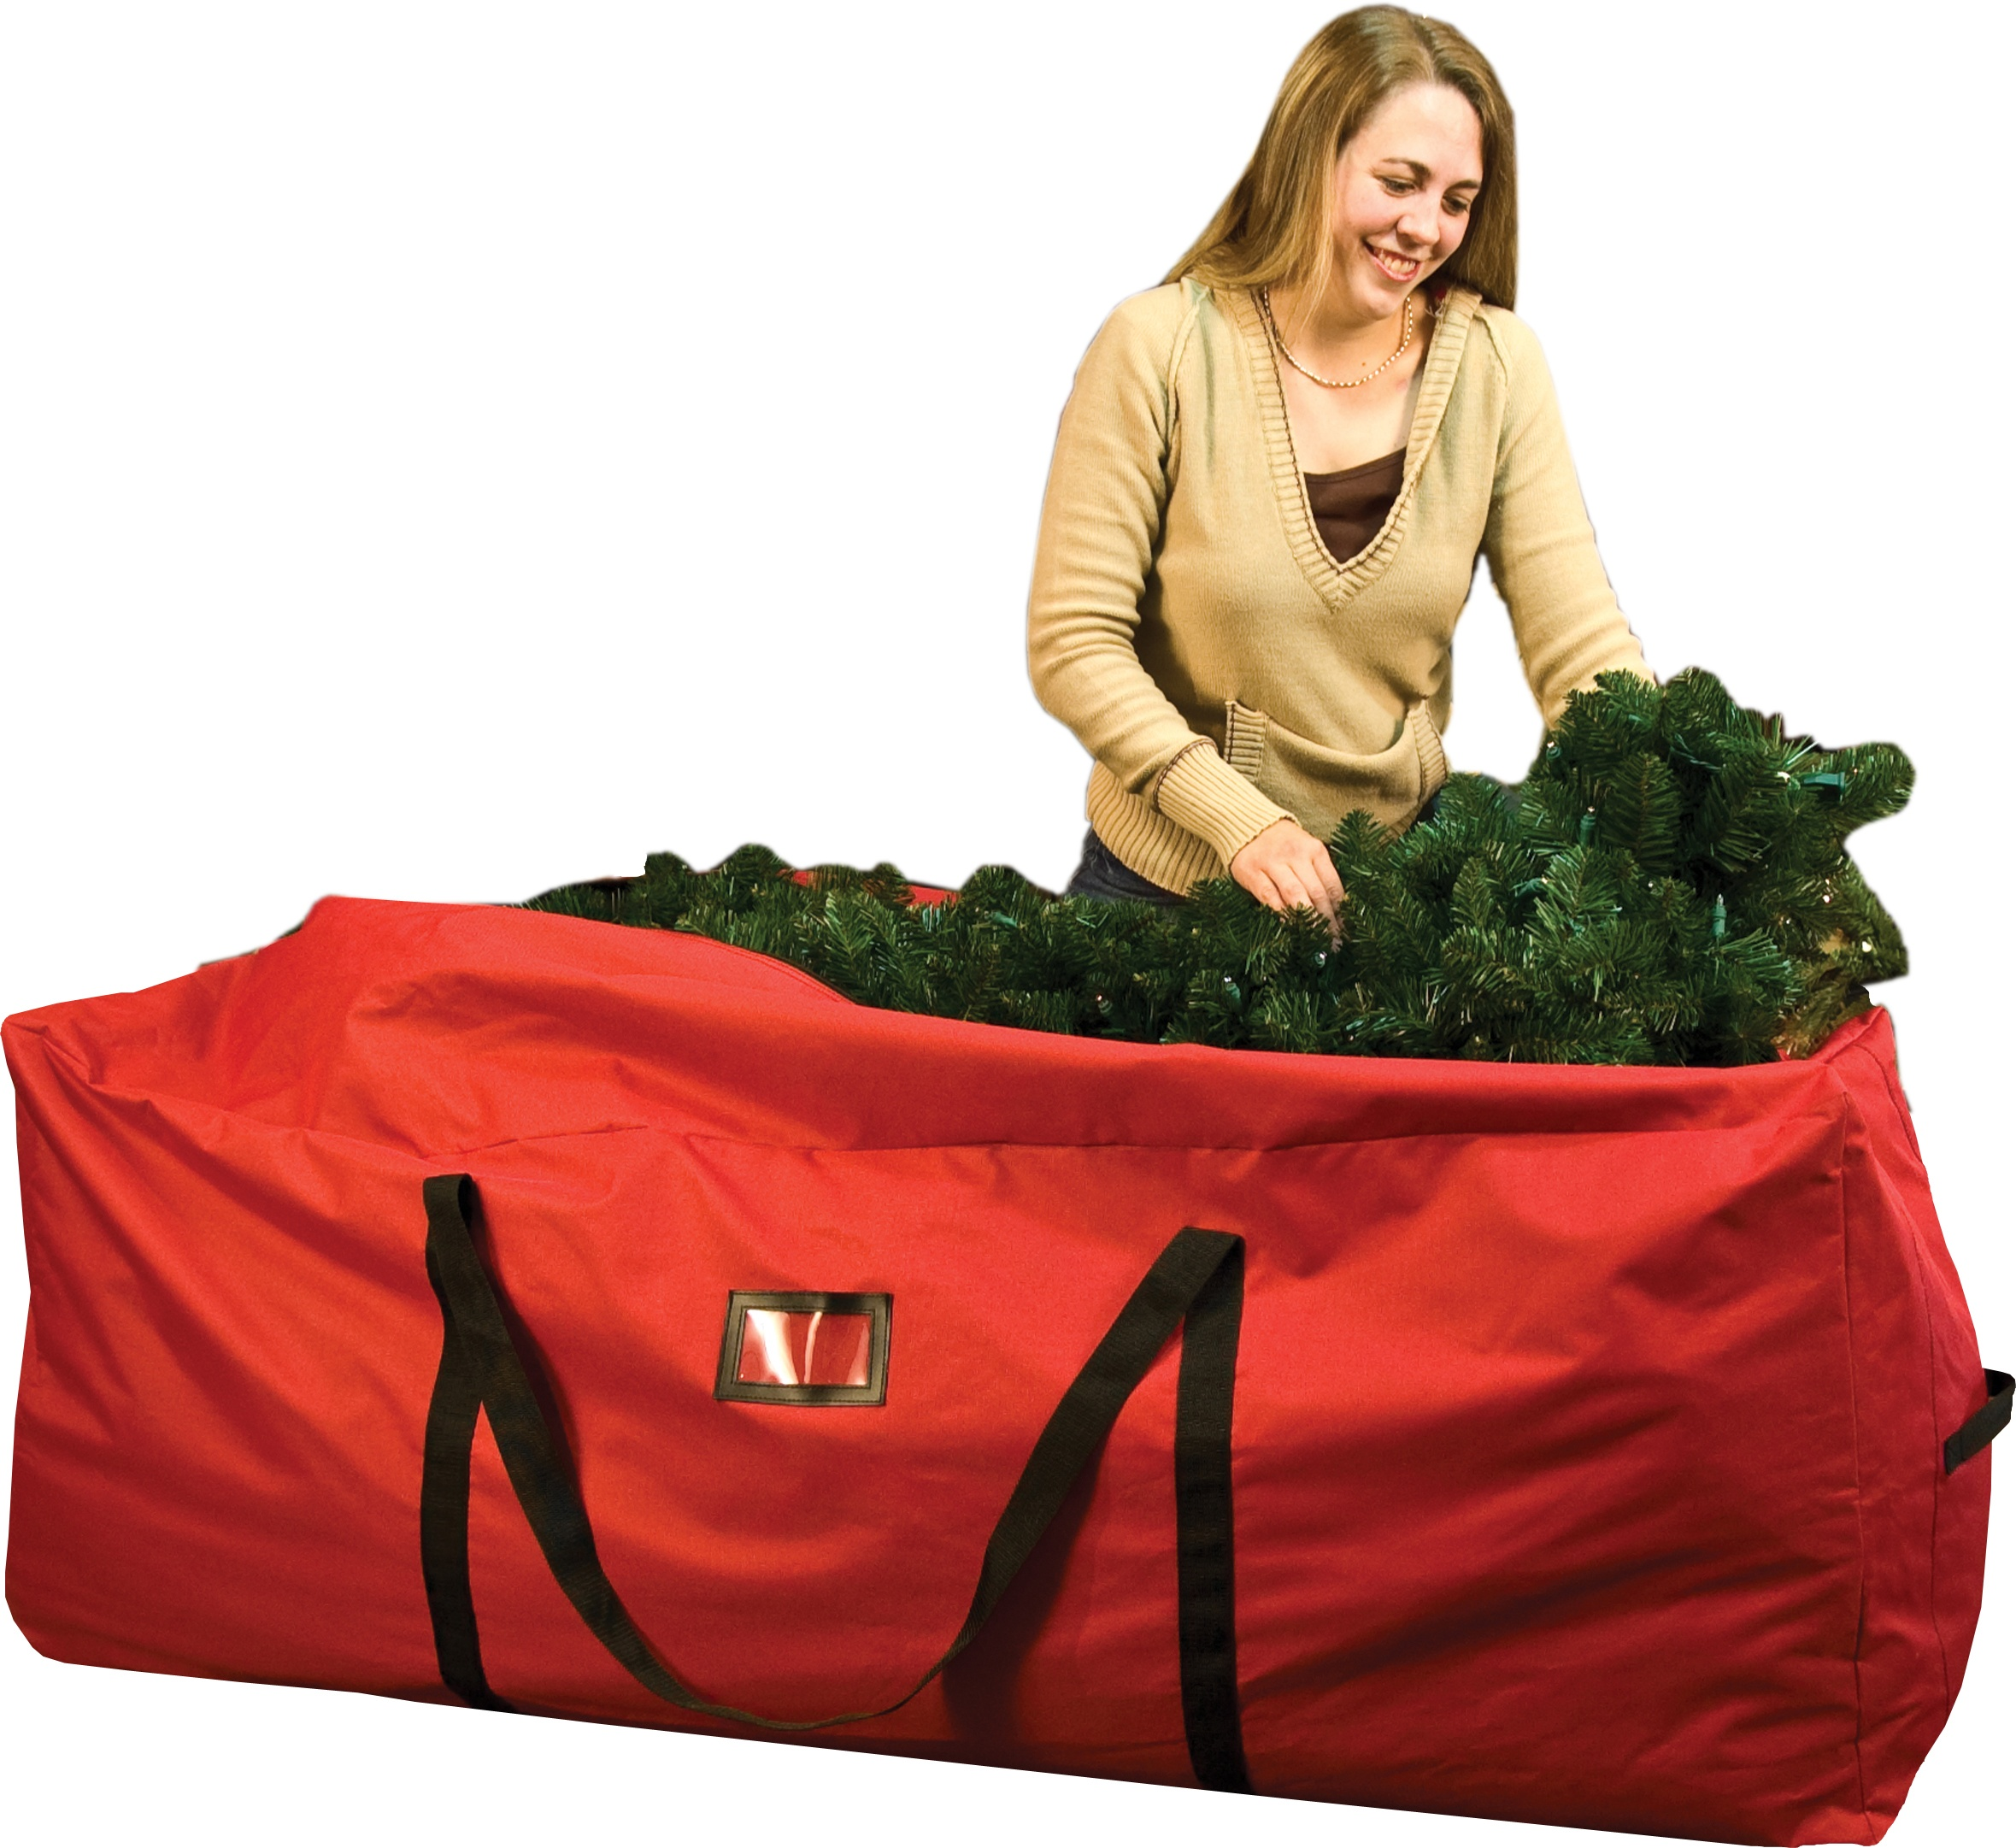 Christmas Tree Storage Bag.Christmas Tree Storage Bag For 6 9 Trees